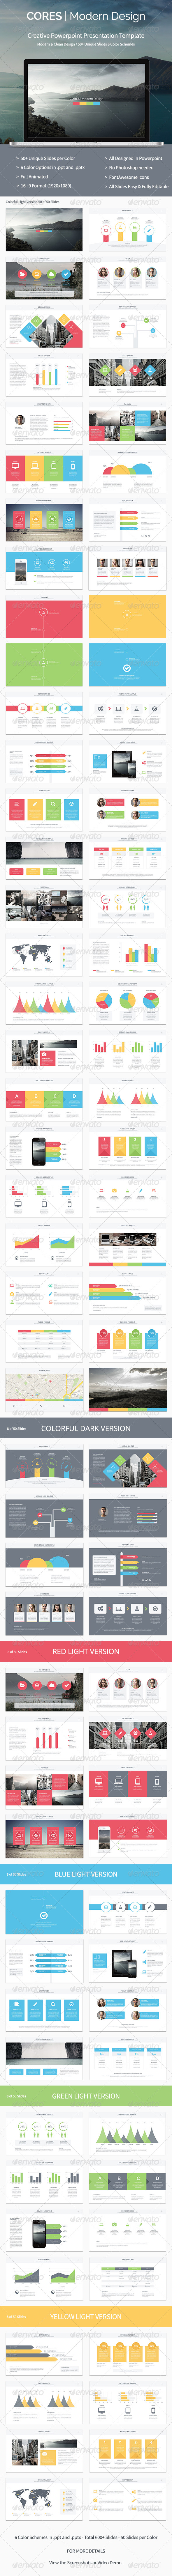 GraphicRiver Cores Powerpoint Presentation Template 8365790